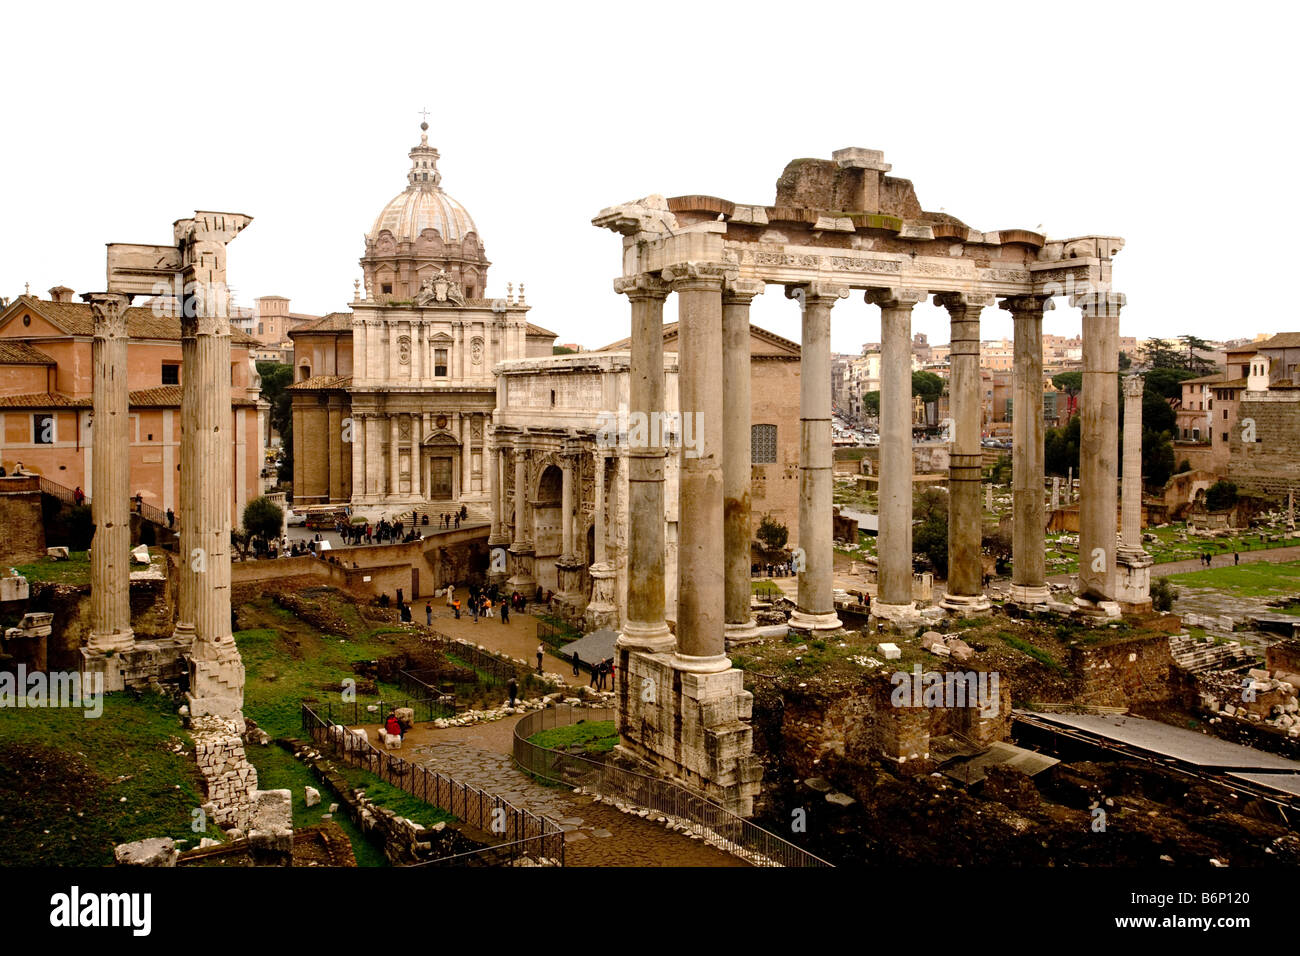 Italy, Rome. The Roman Forum, center of ancient Rome. - Stock Image